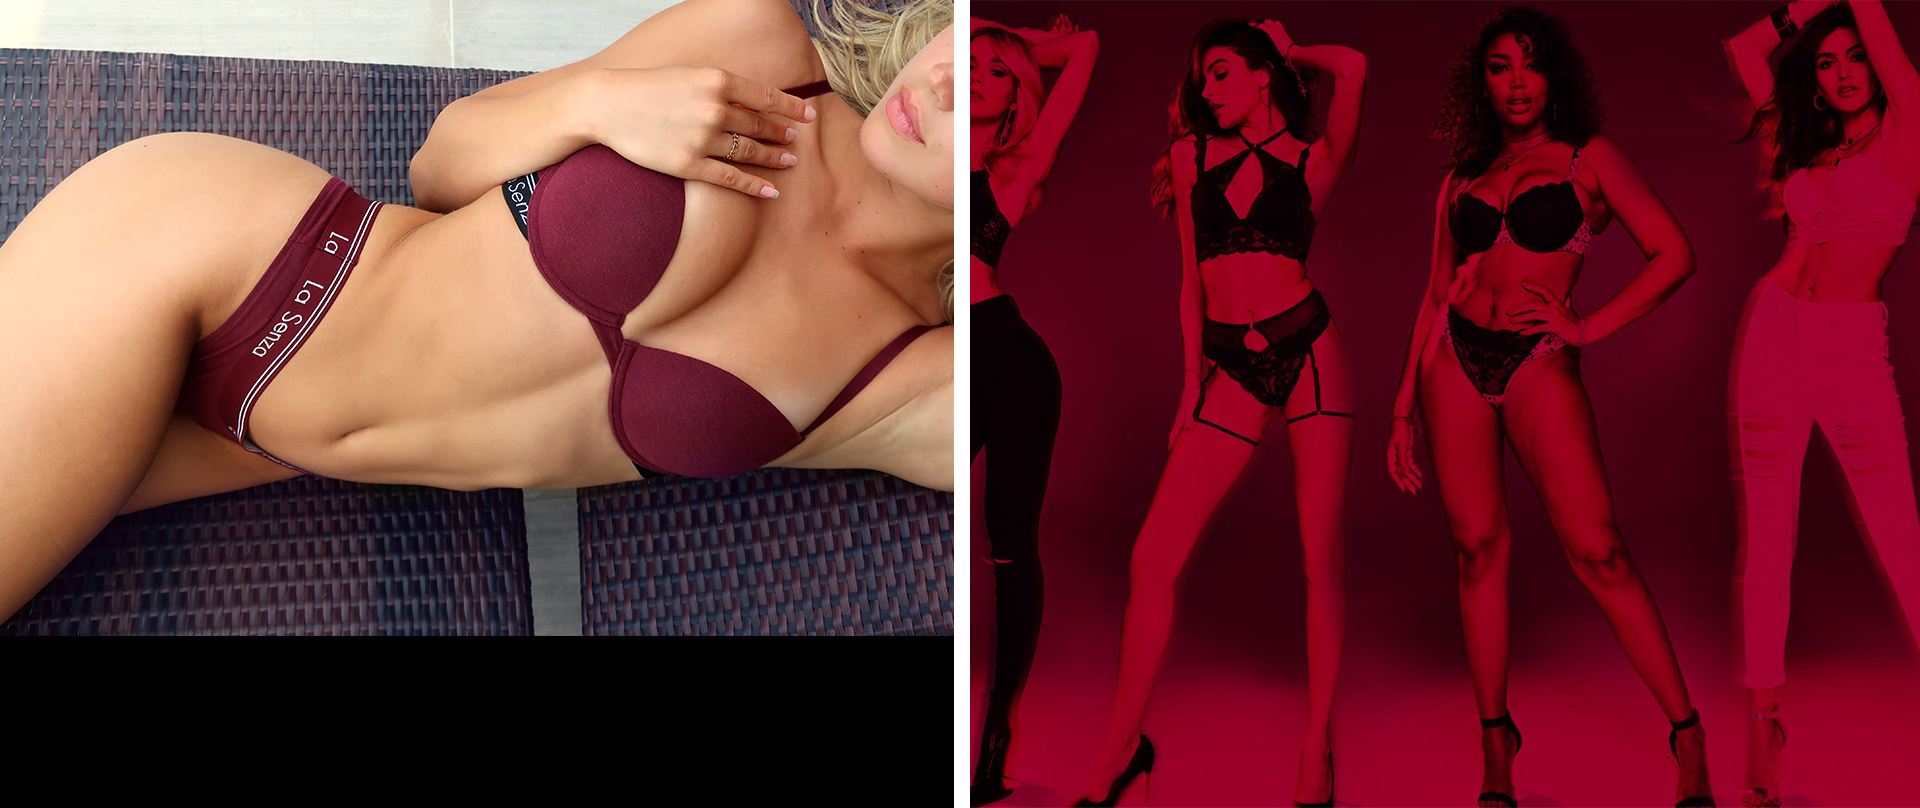 La Senza model wearing a lounge bra and panty.